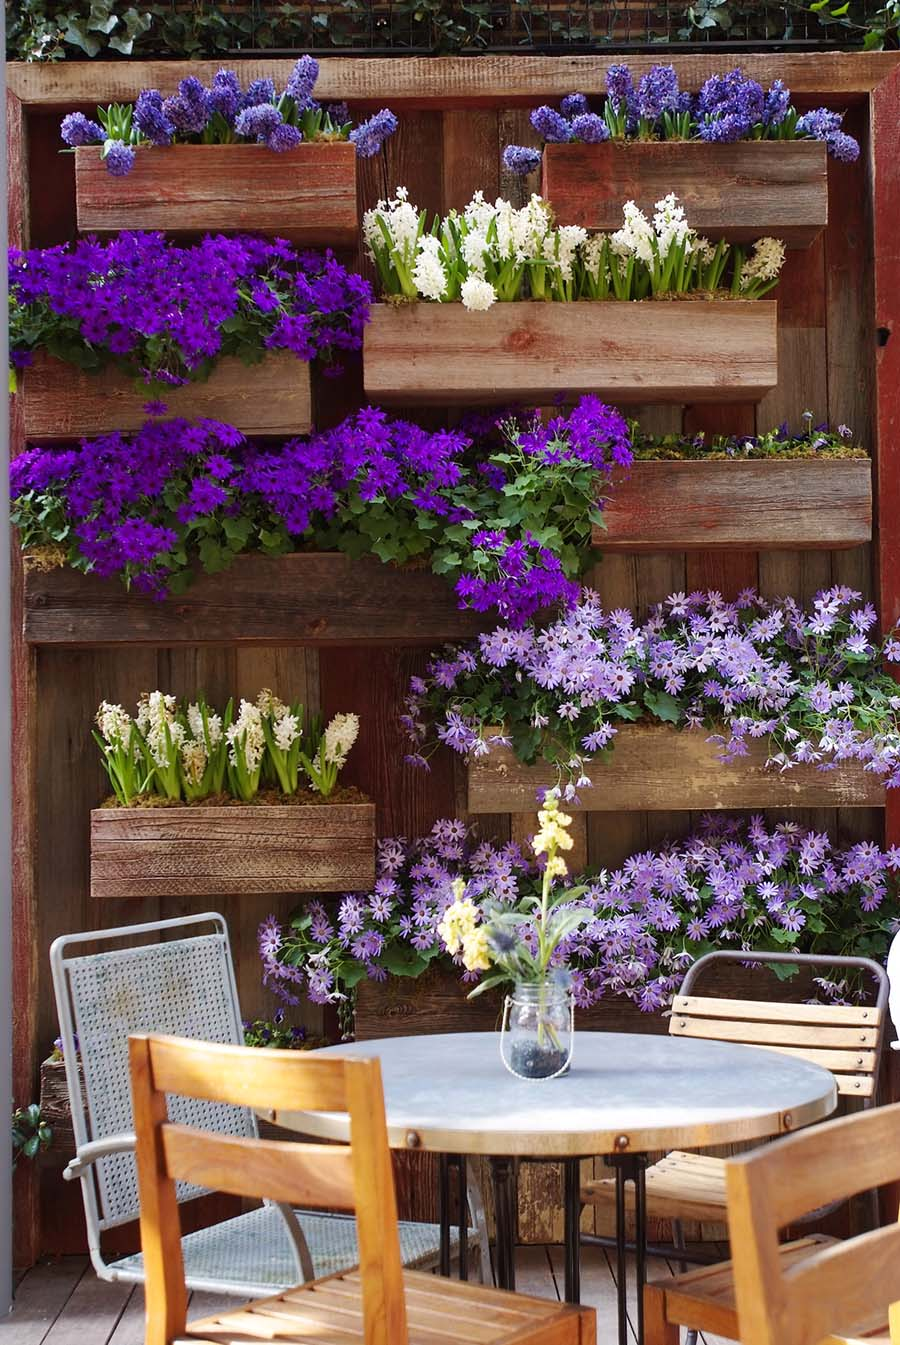 The 50 Best Vertical Garden Ideas and Designs for 2016 on Best Backyard Patio Designs id=97906